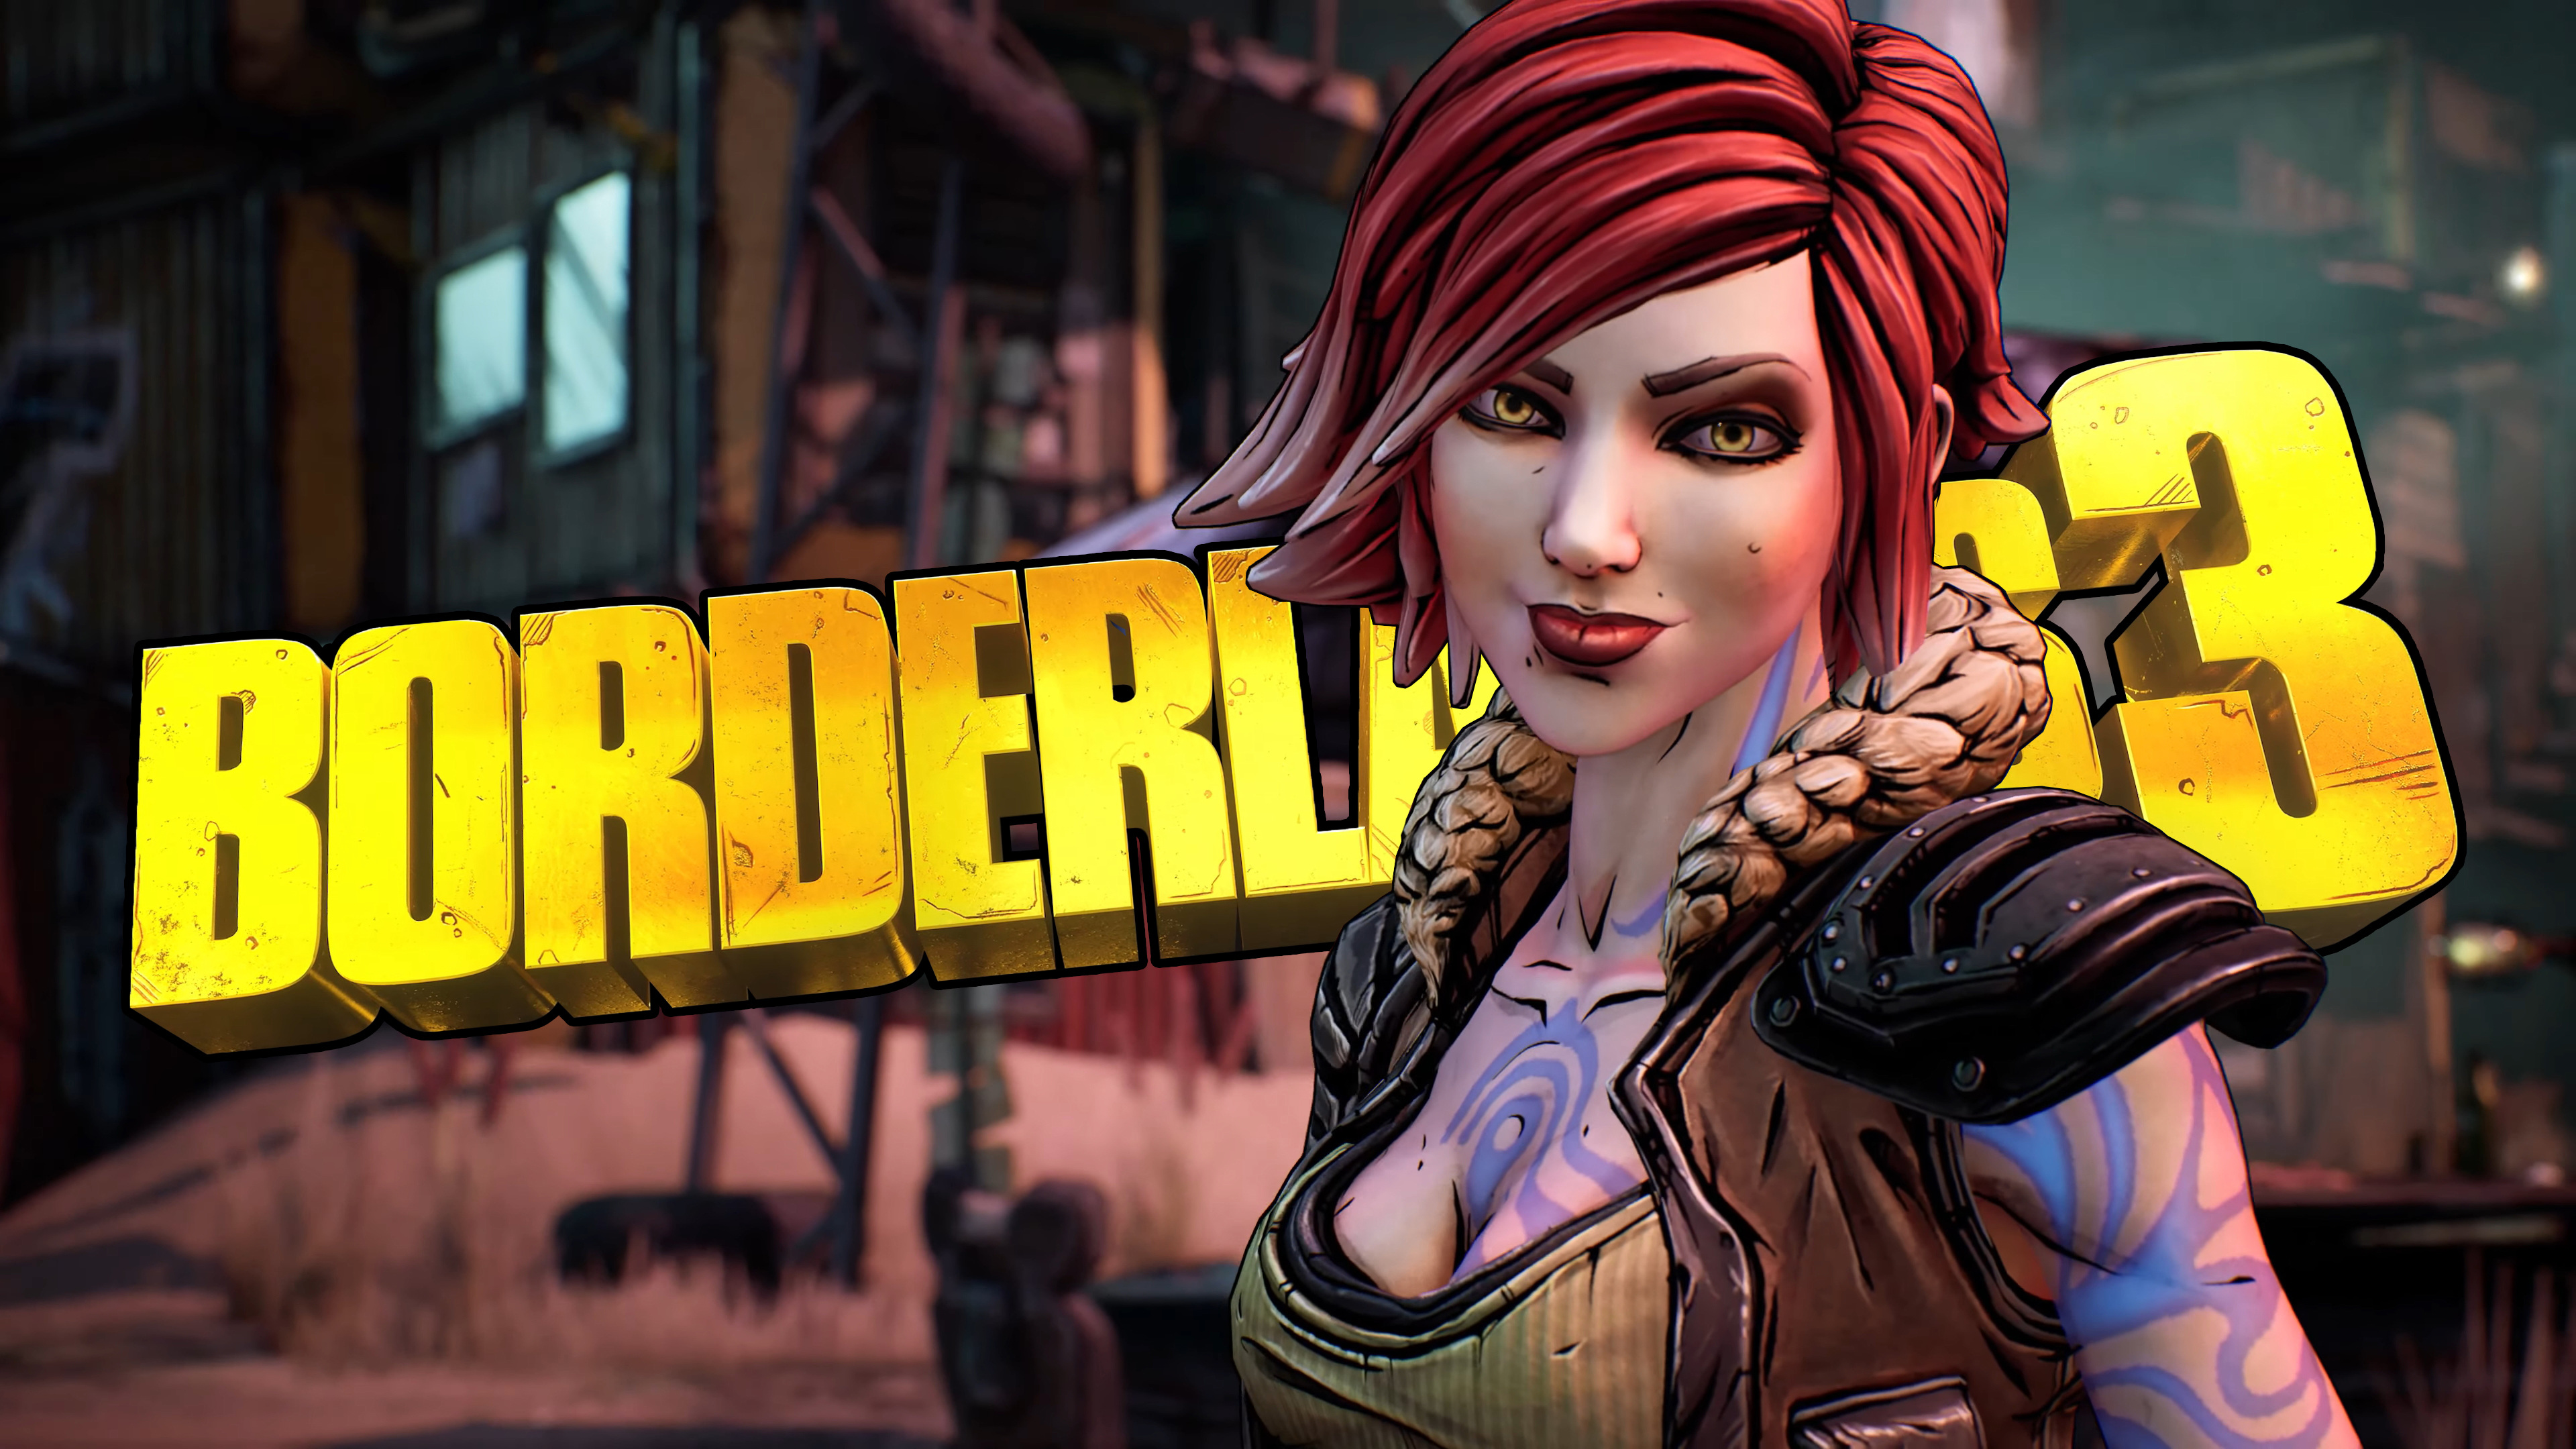 Borderlands 3 Wallpaper 4k Ultra Hd Id 3085